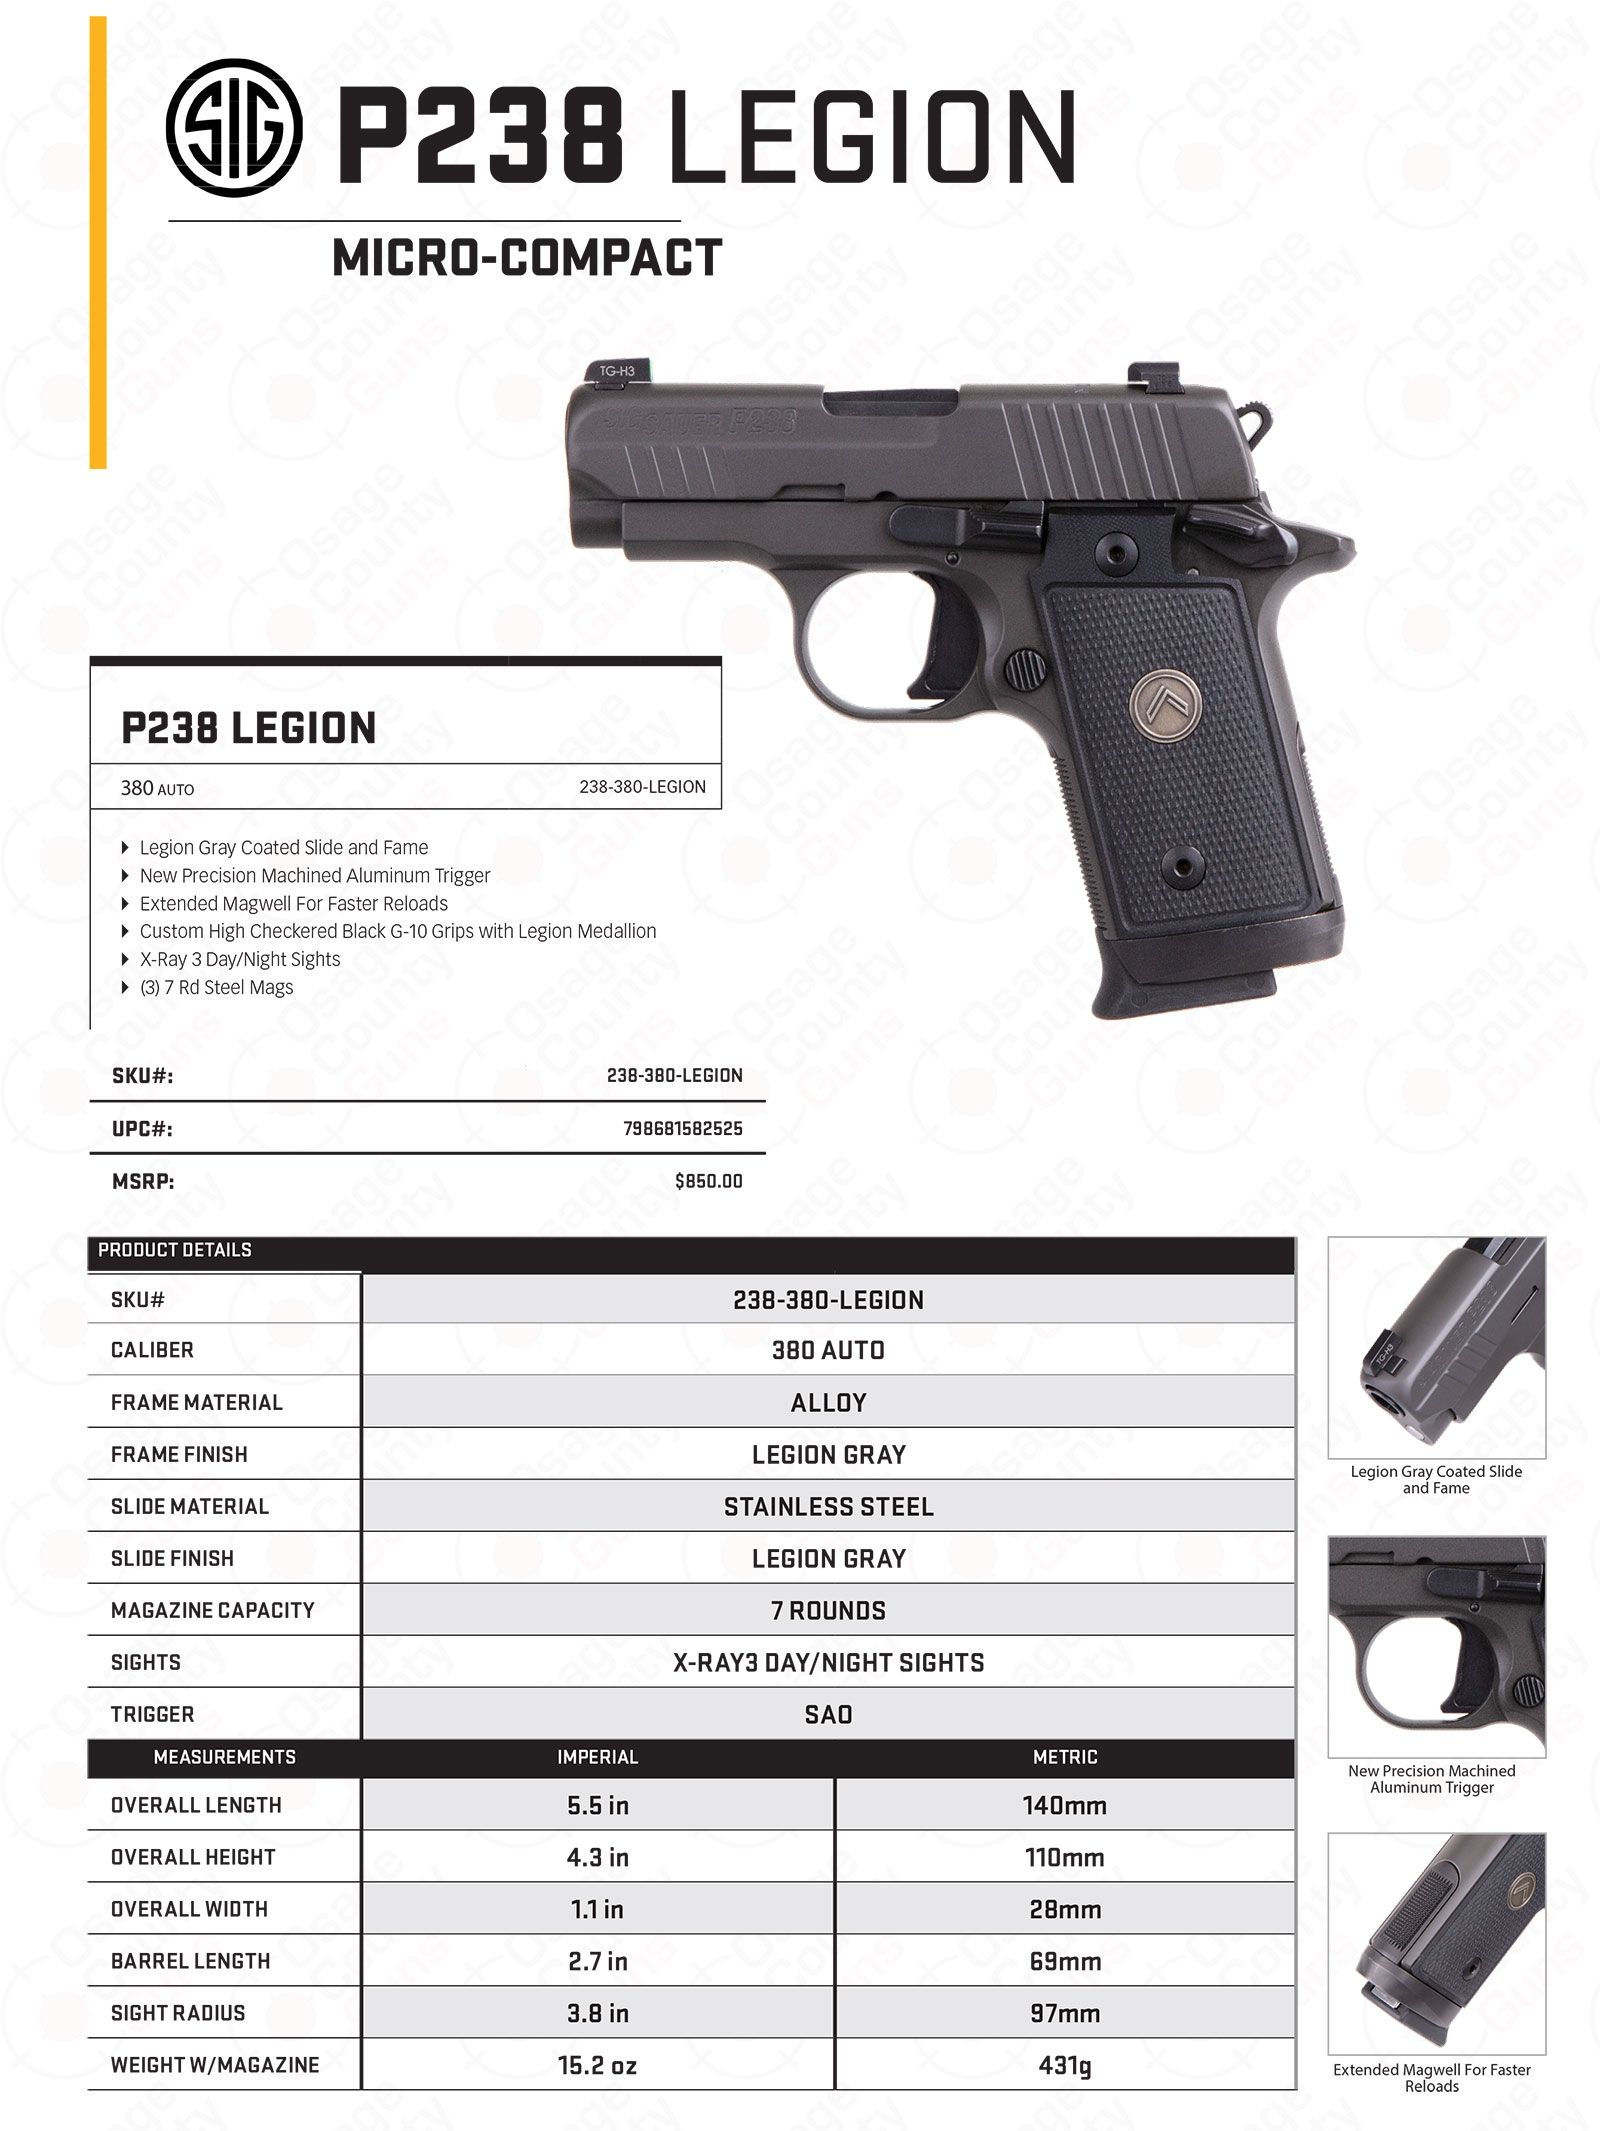 Sig P238 Legion Sell Sheet